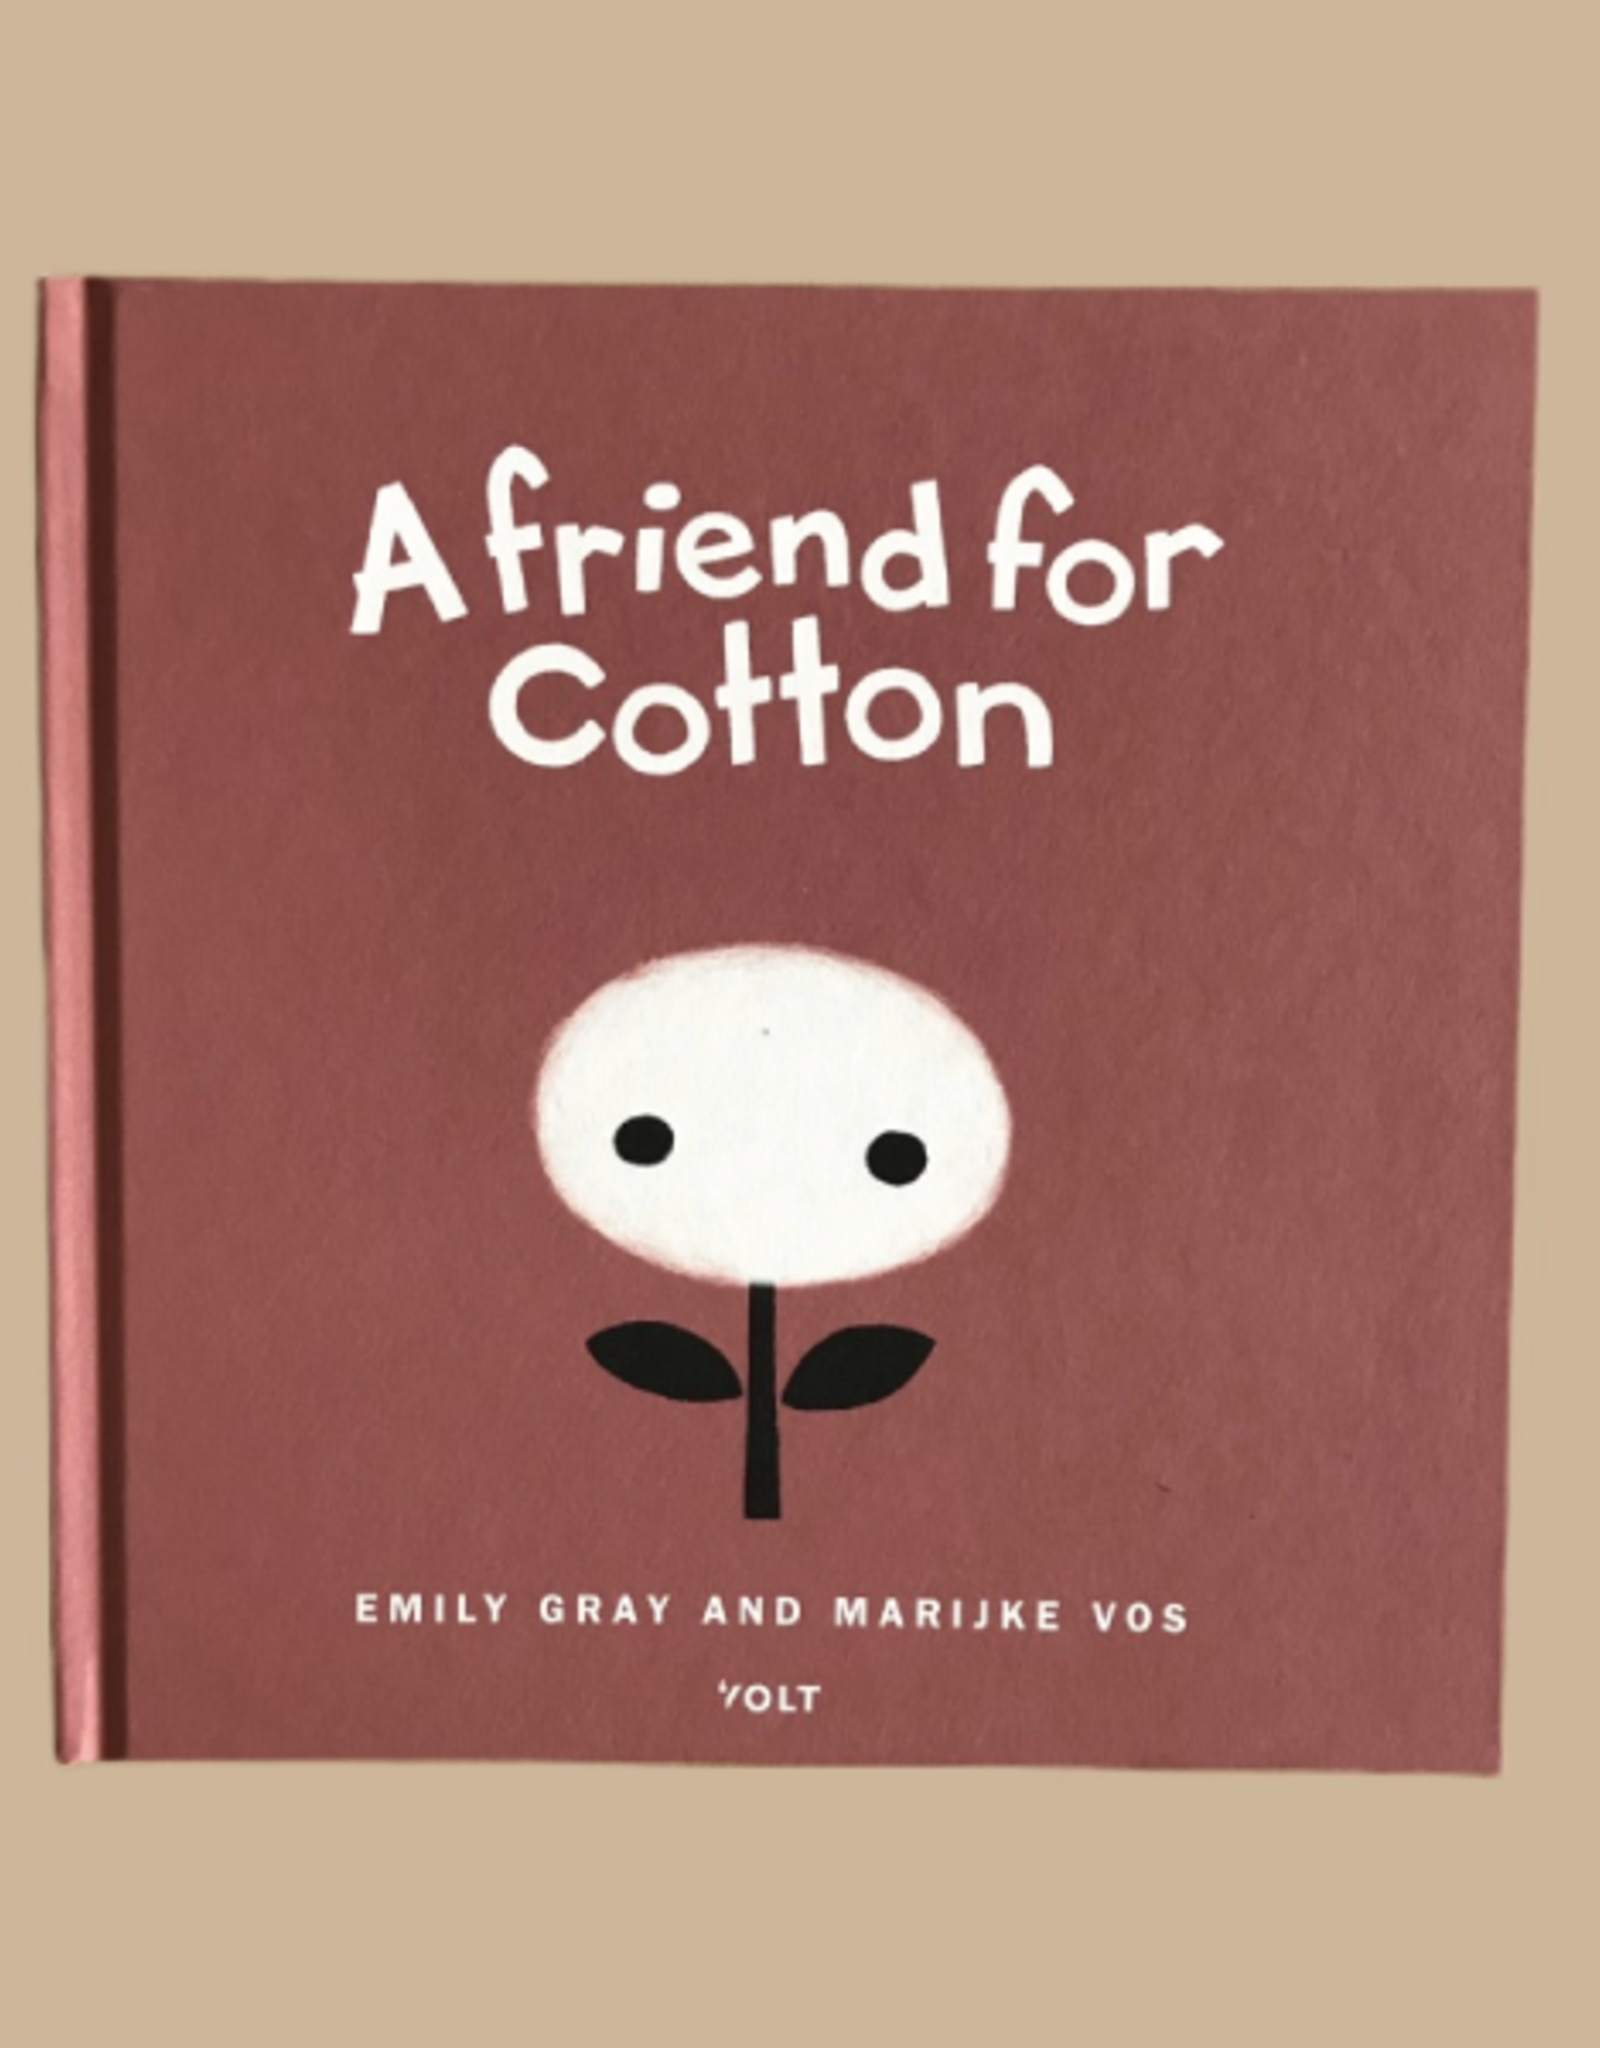 Gray Label Book A friend for cotton